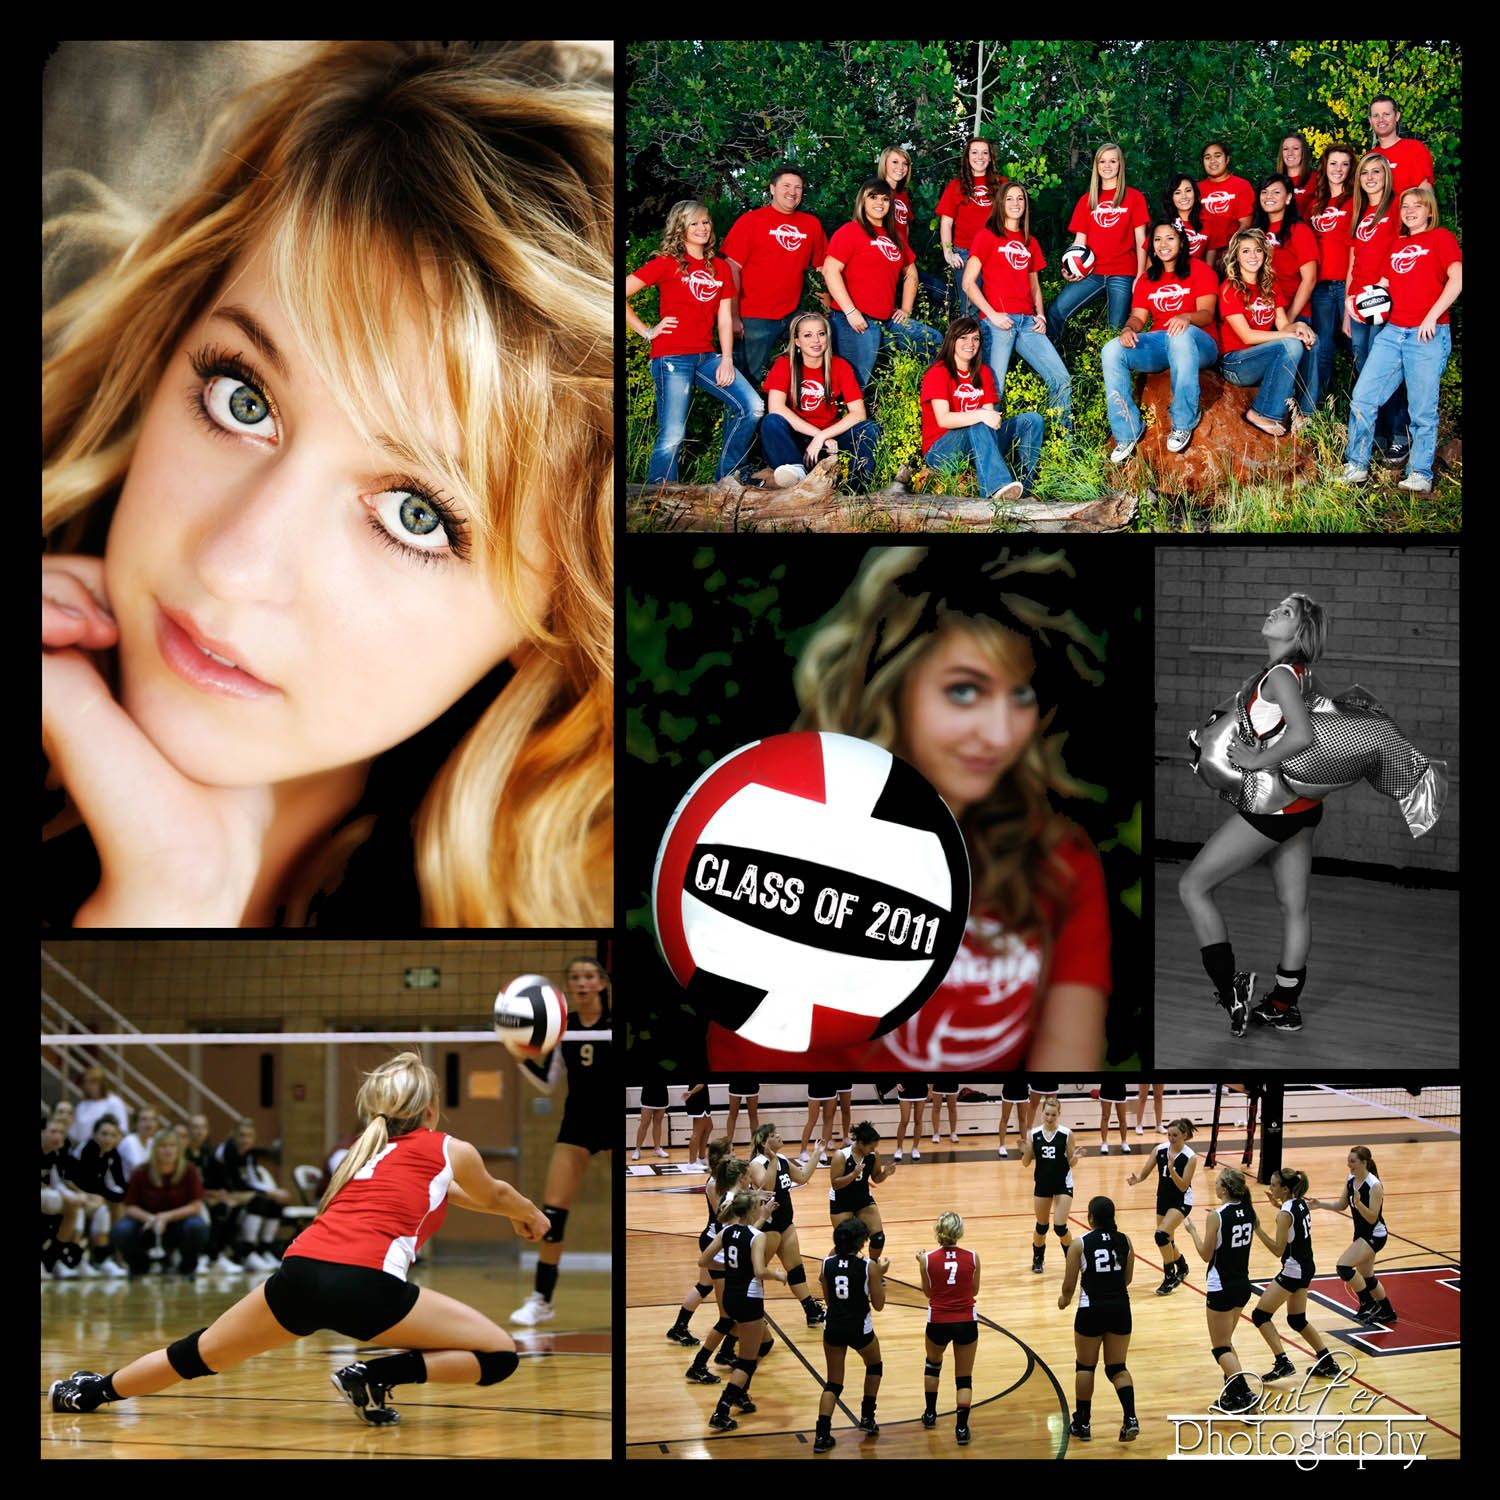 volleyball senior picture ideas bing images senior